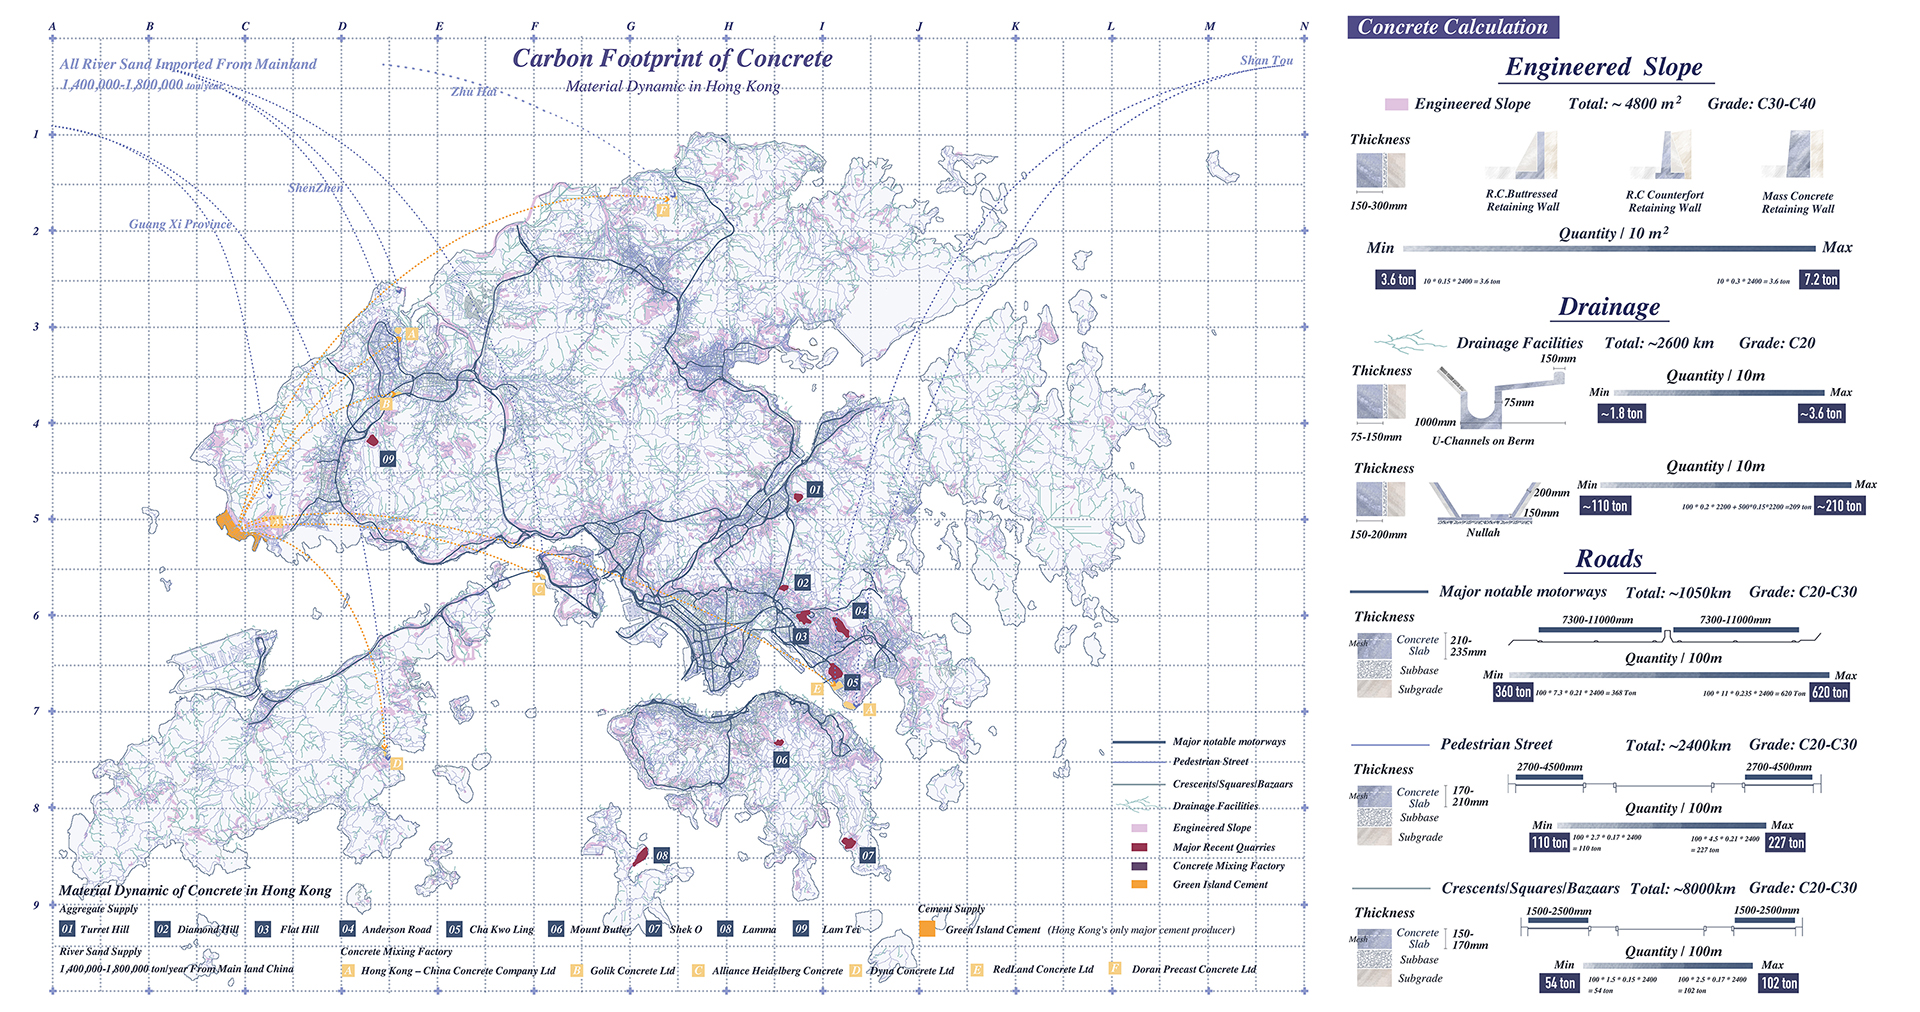 Enlarge Photo: The mapping shows the material dynamic of concrete; the urban infrastructure is used as a touchstone to study the carbon footprint of concrete in Hong Kong. By HE Jialei Constance.